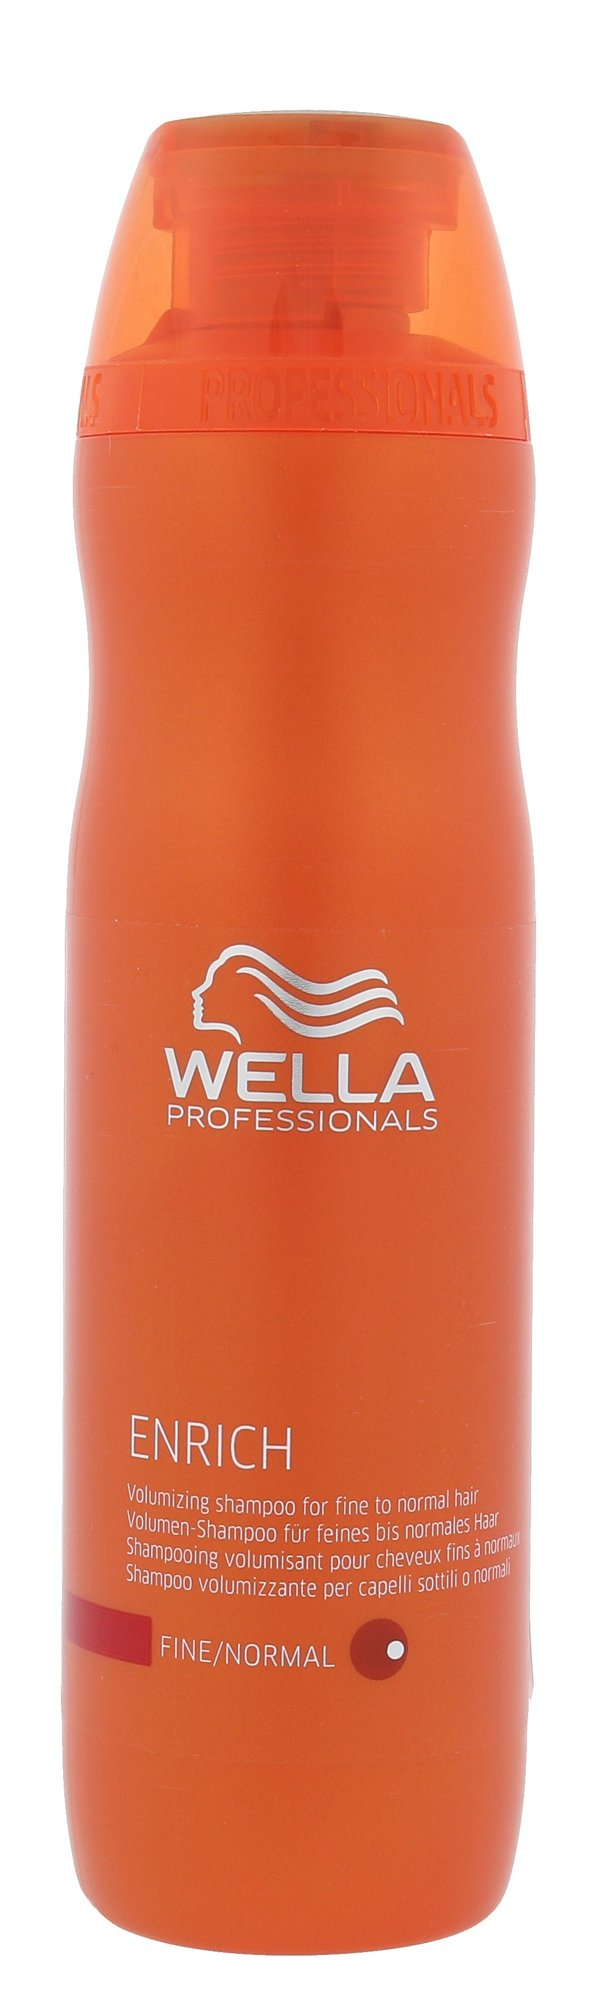 Wella Enrich Cosmetic 250ml